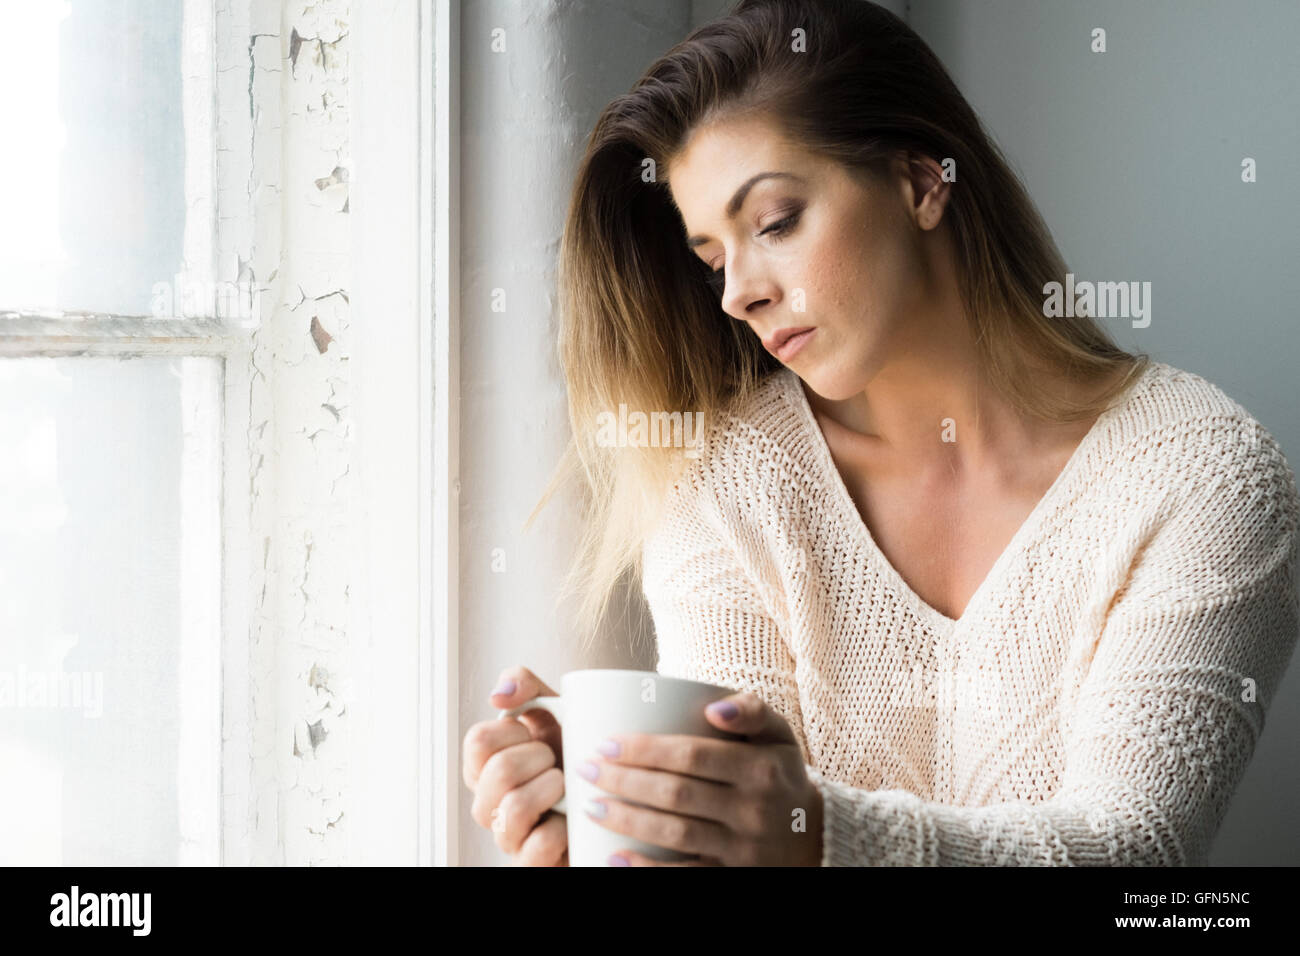 Woman in her 20s contemplates life over a hot drink - Stock Image